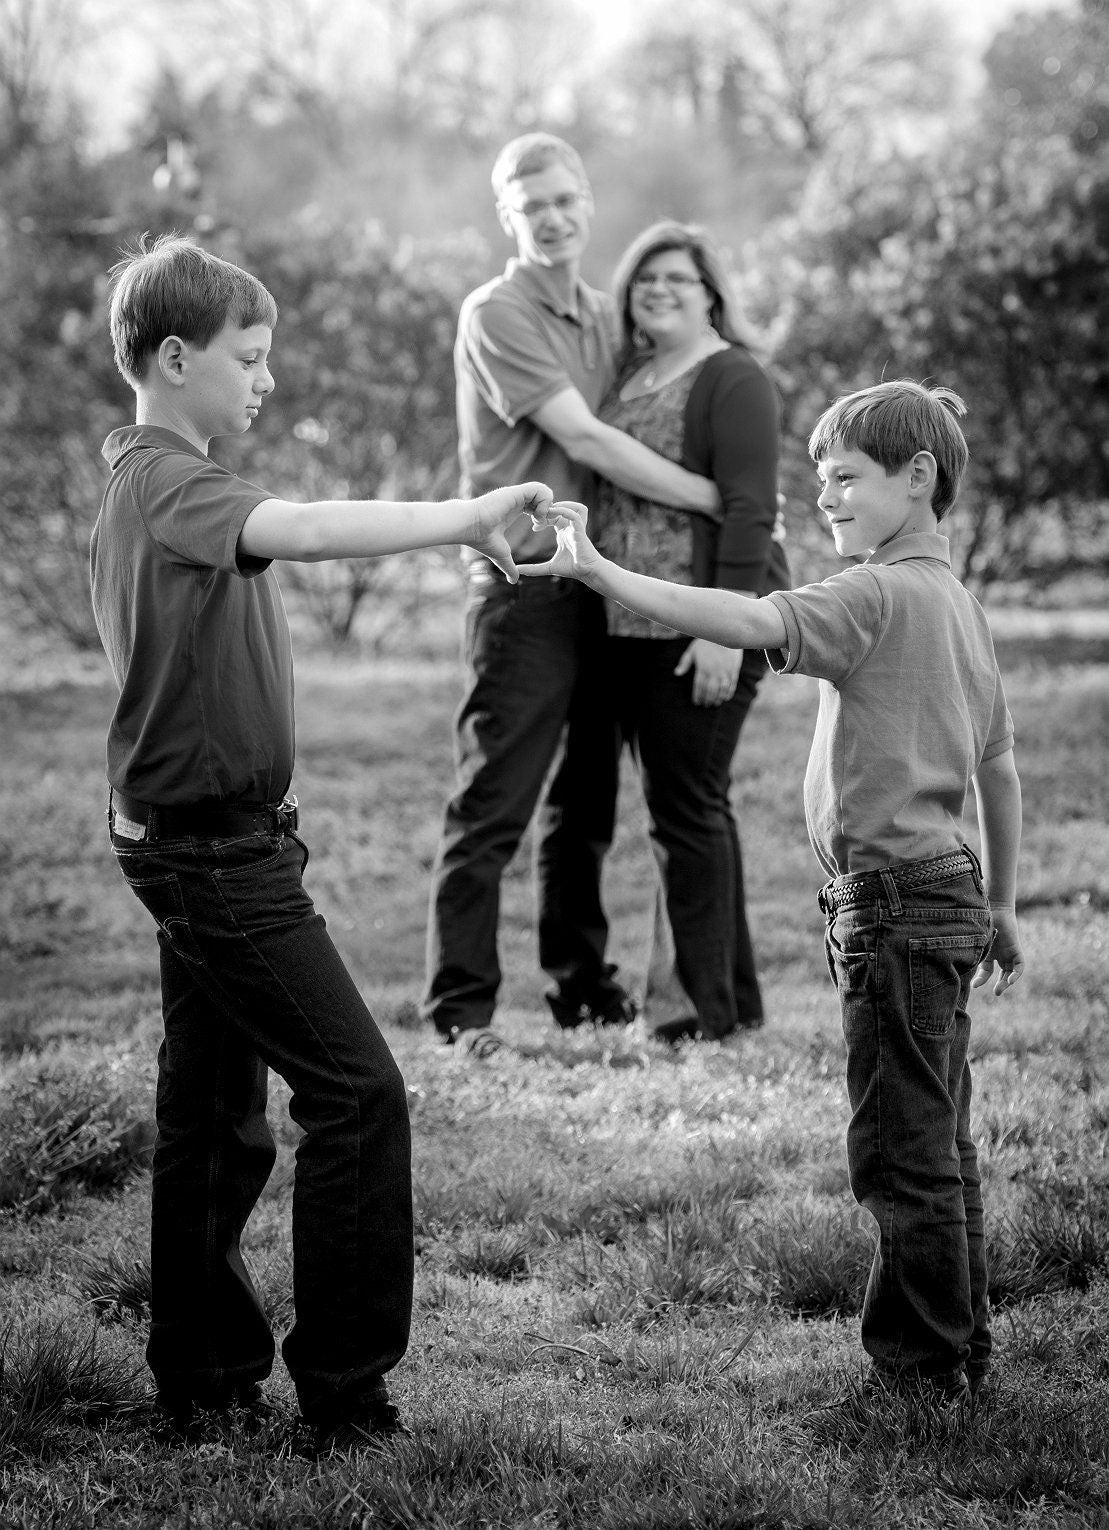 Brotherly Love with Heart Hands - Tracy McCrackin Photography